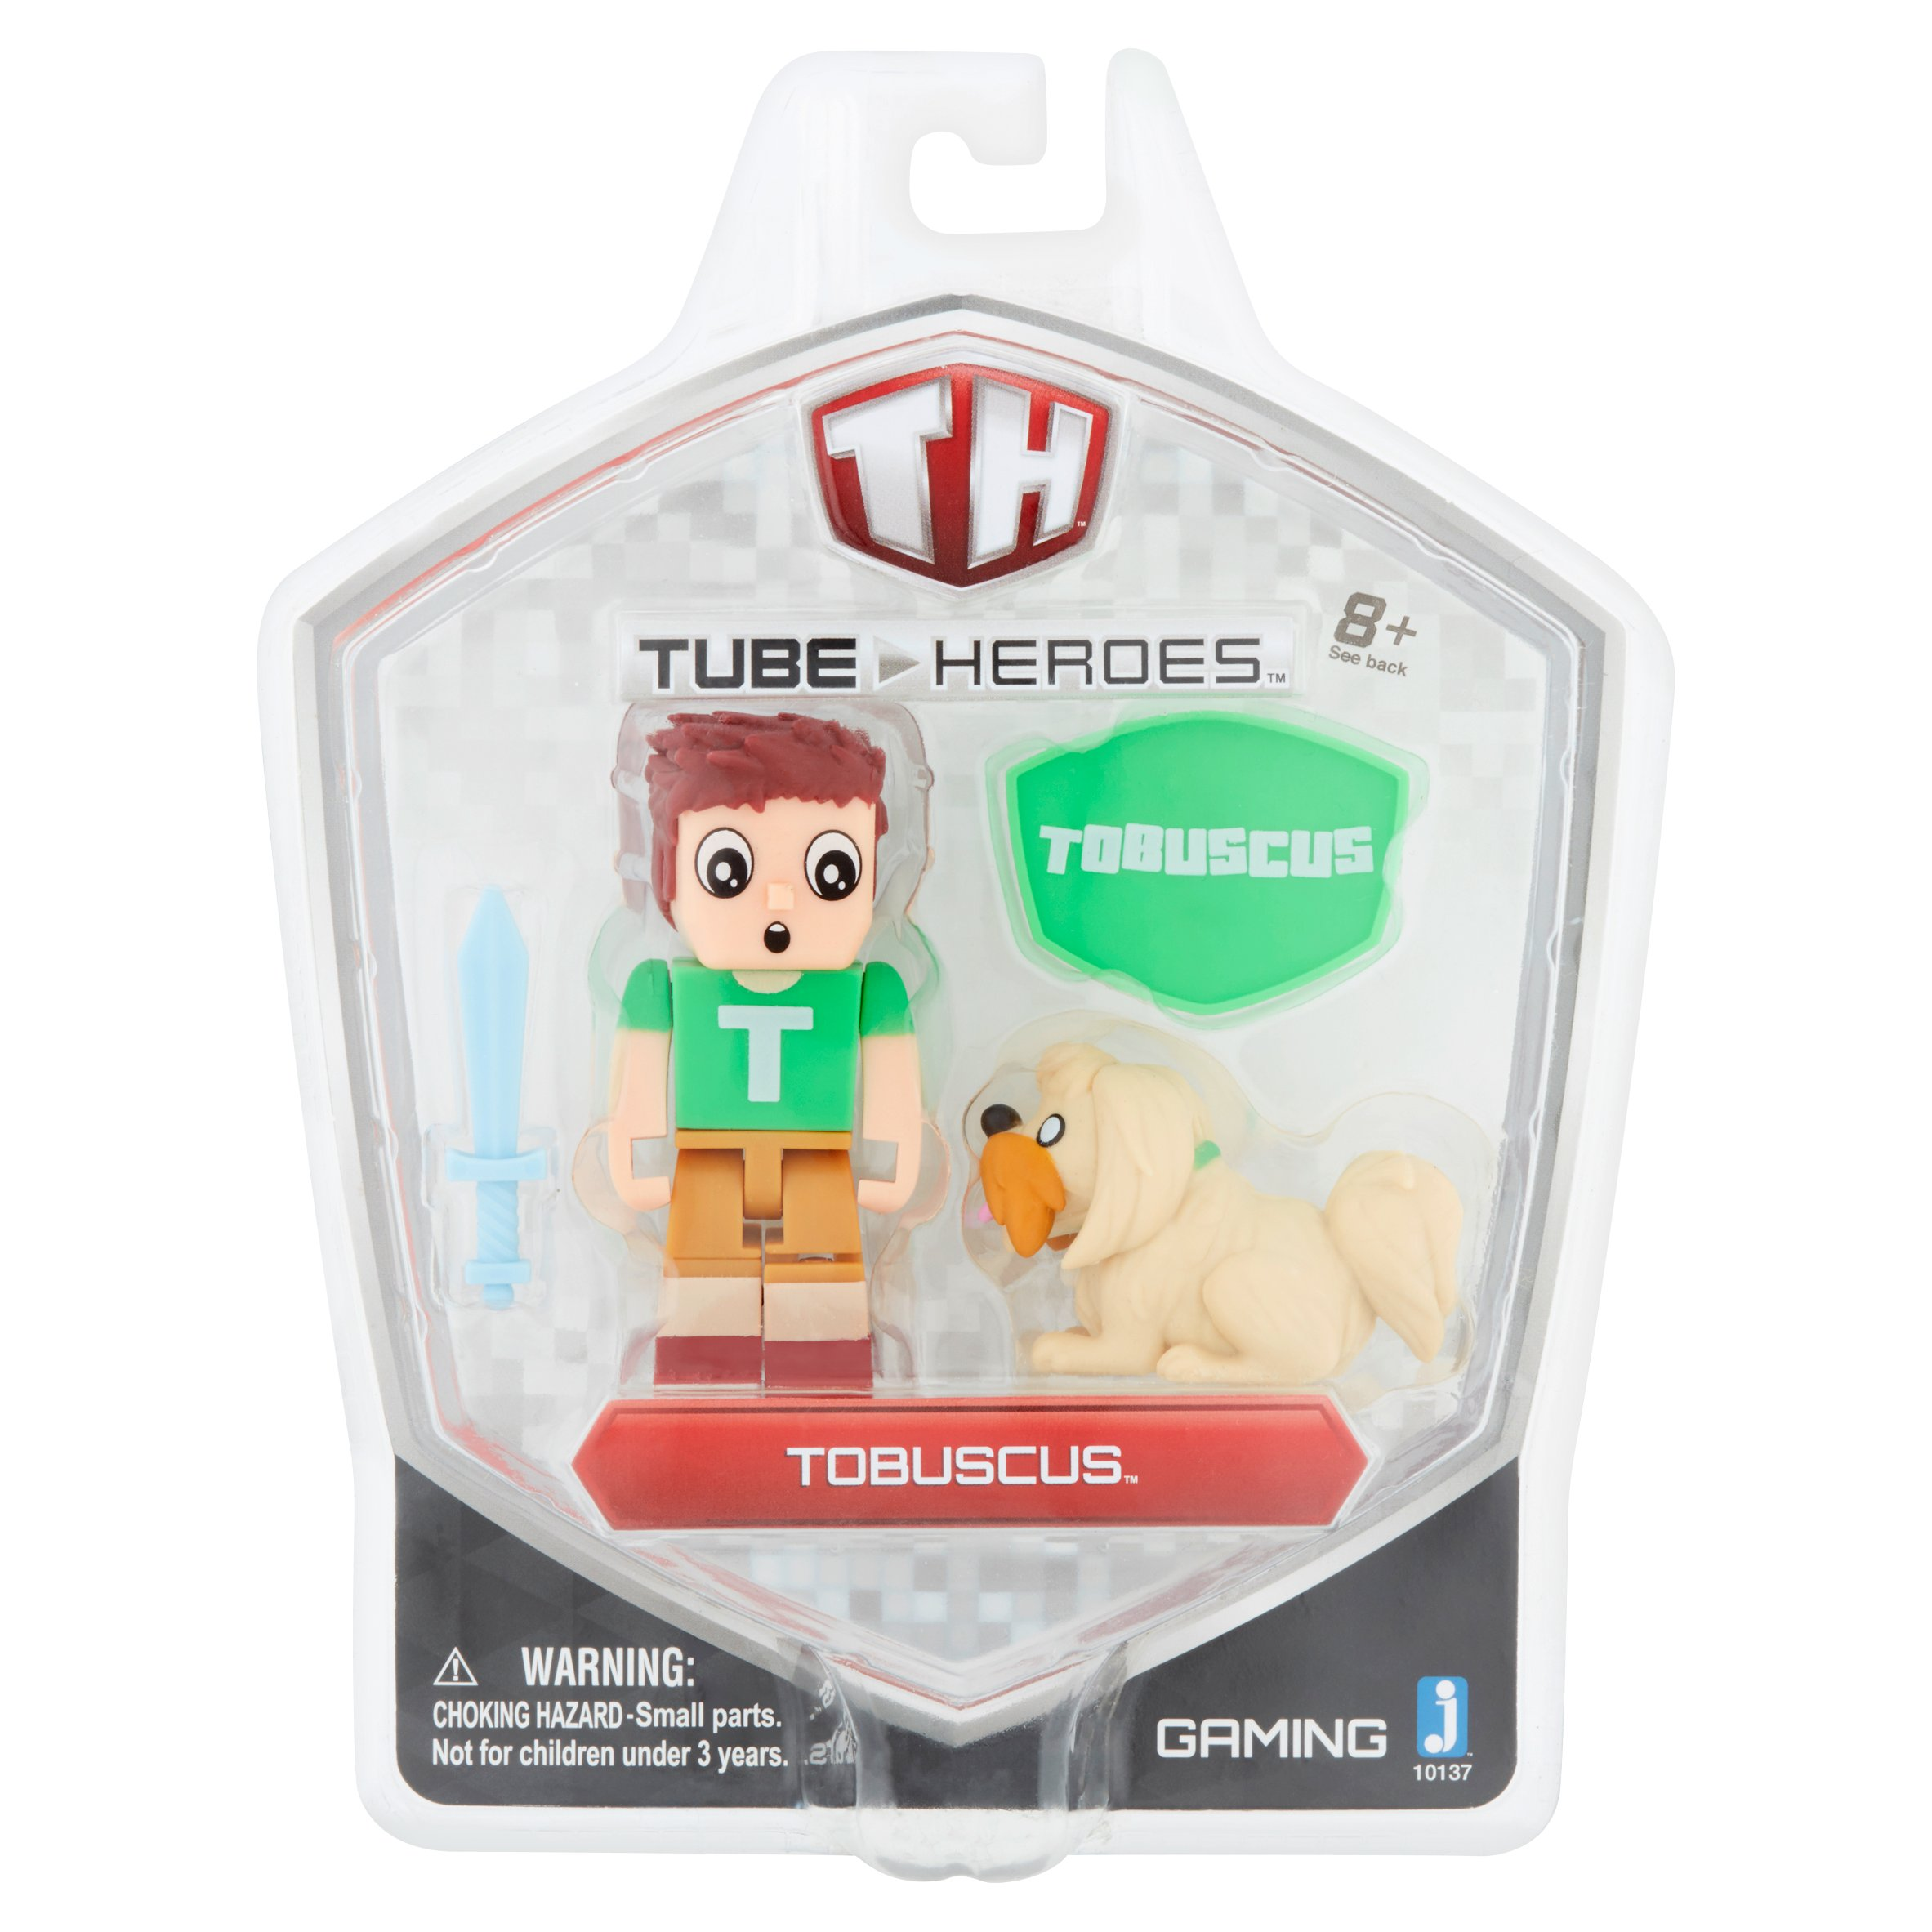 Tube Heroes Tobuscus Toy Figure 8+